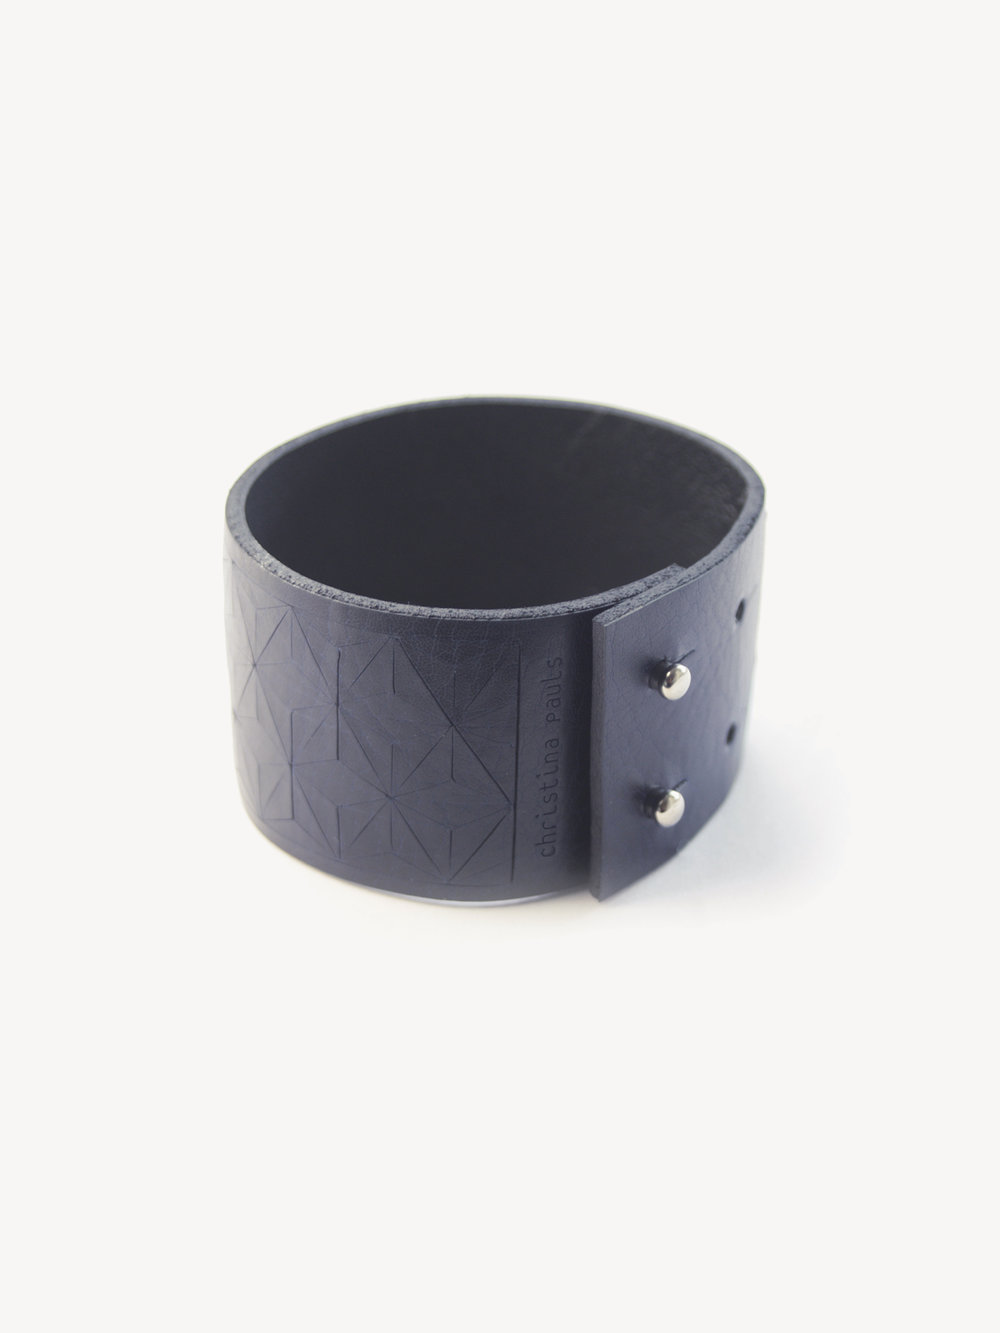 Leder-Armband, schmal in dunkelblau/ Leather bracelet, small in navy